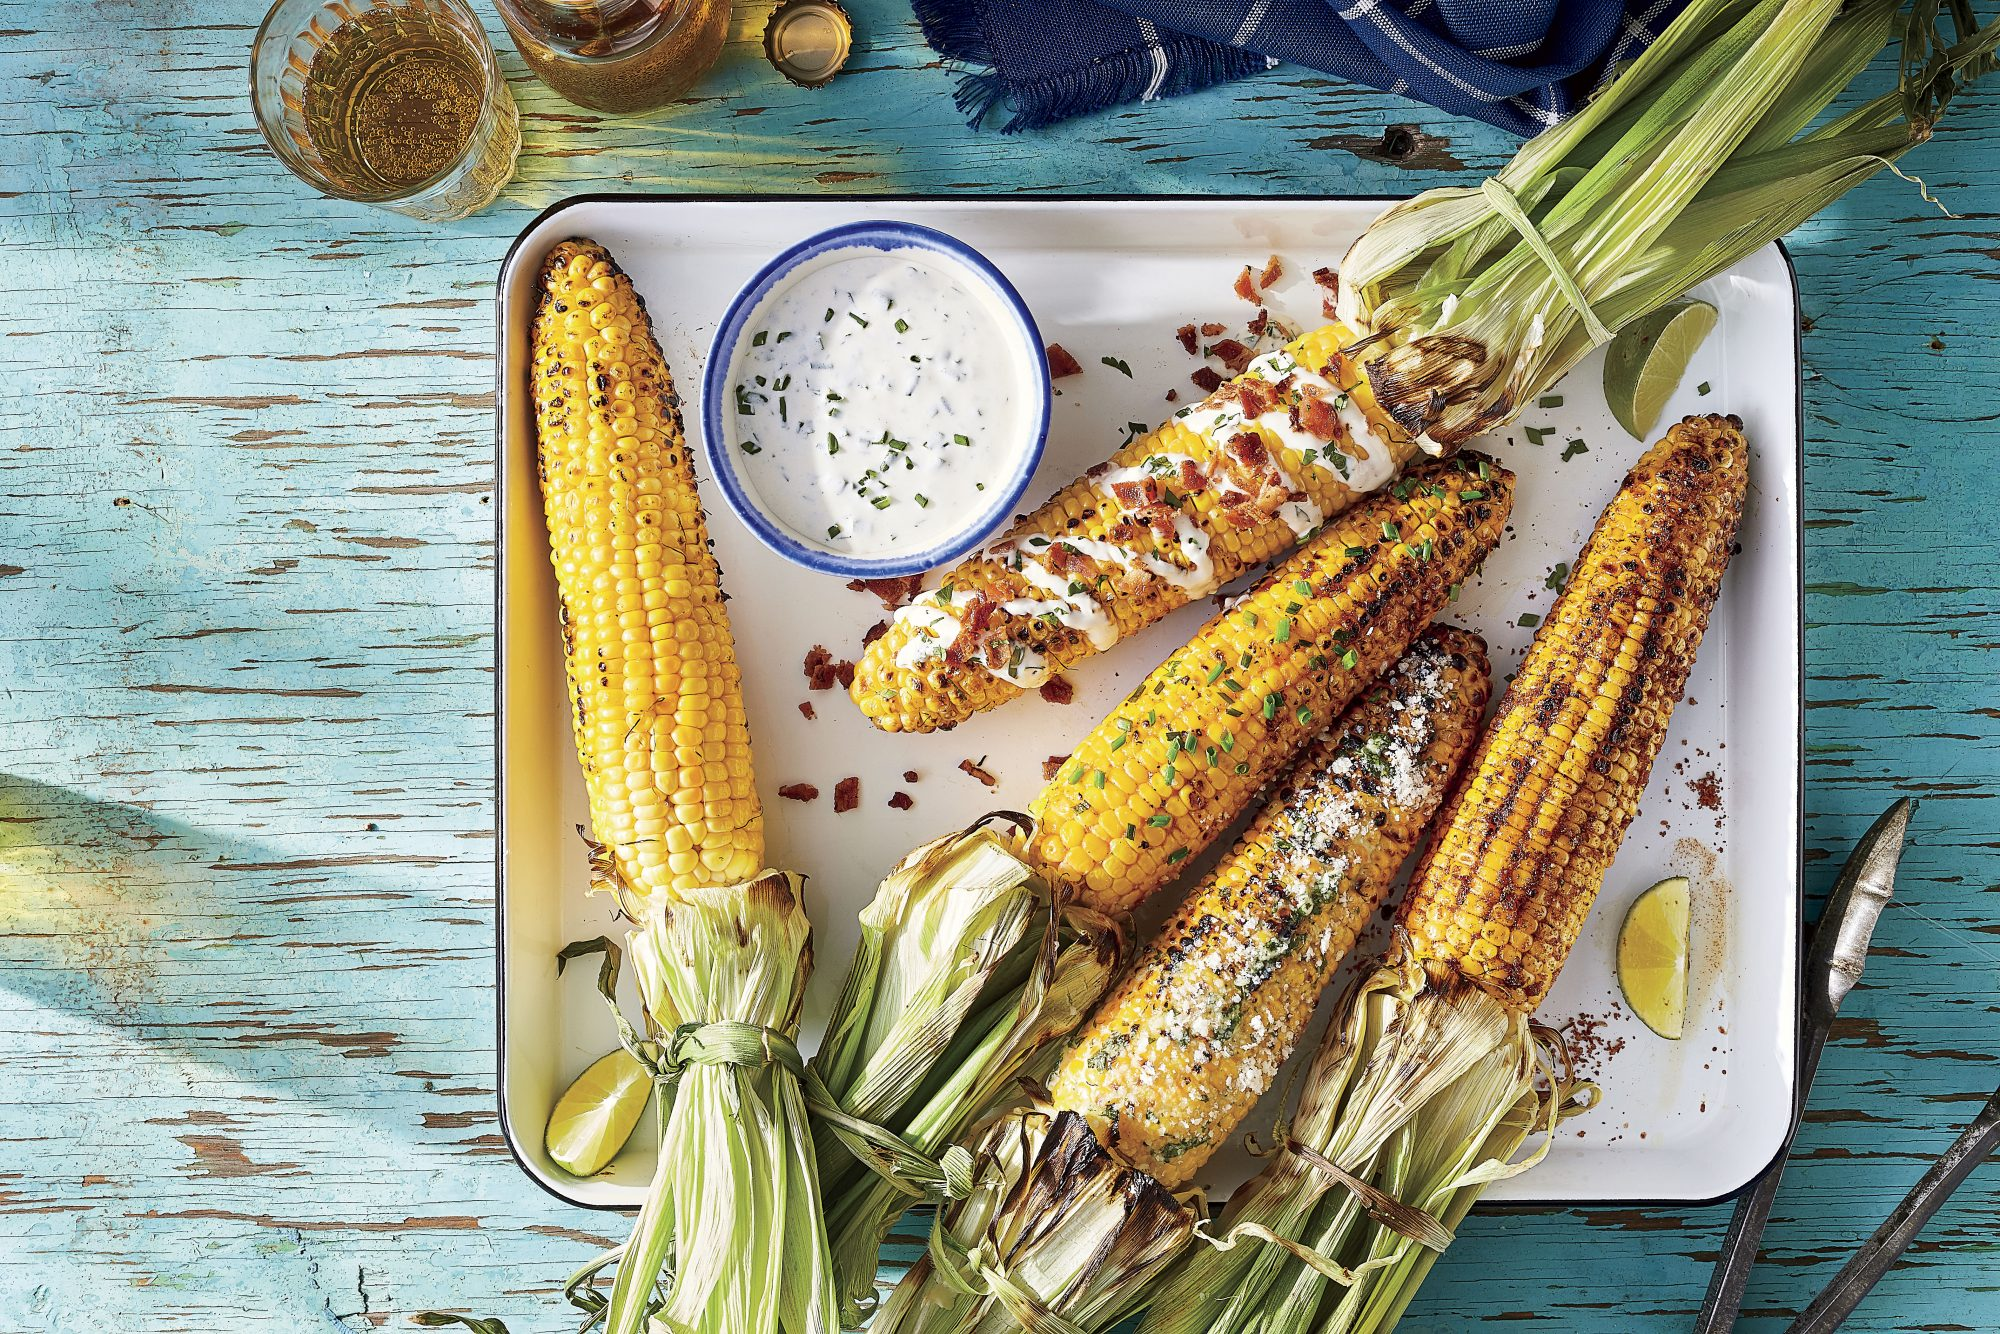 Classic Grilled Corn on the Cob